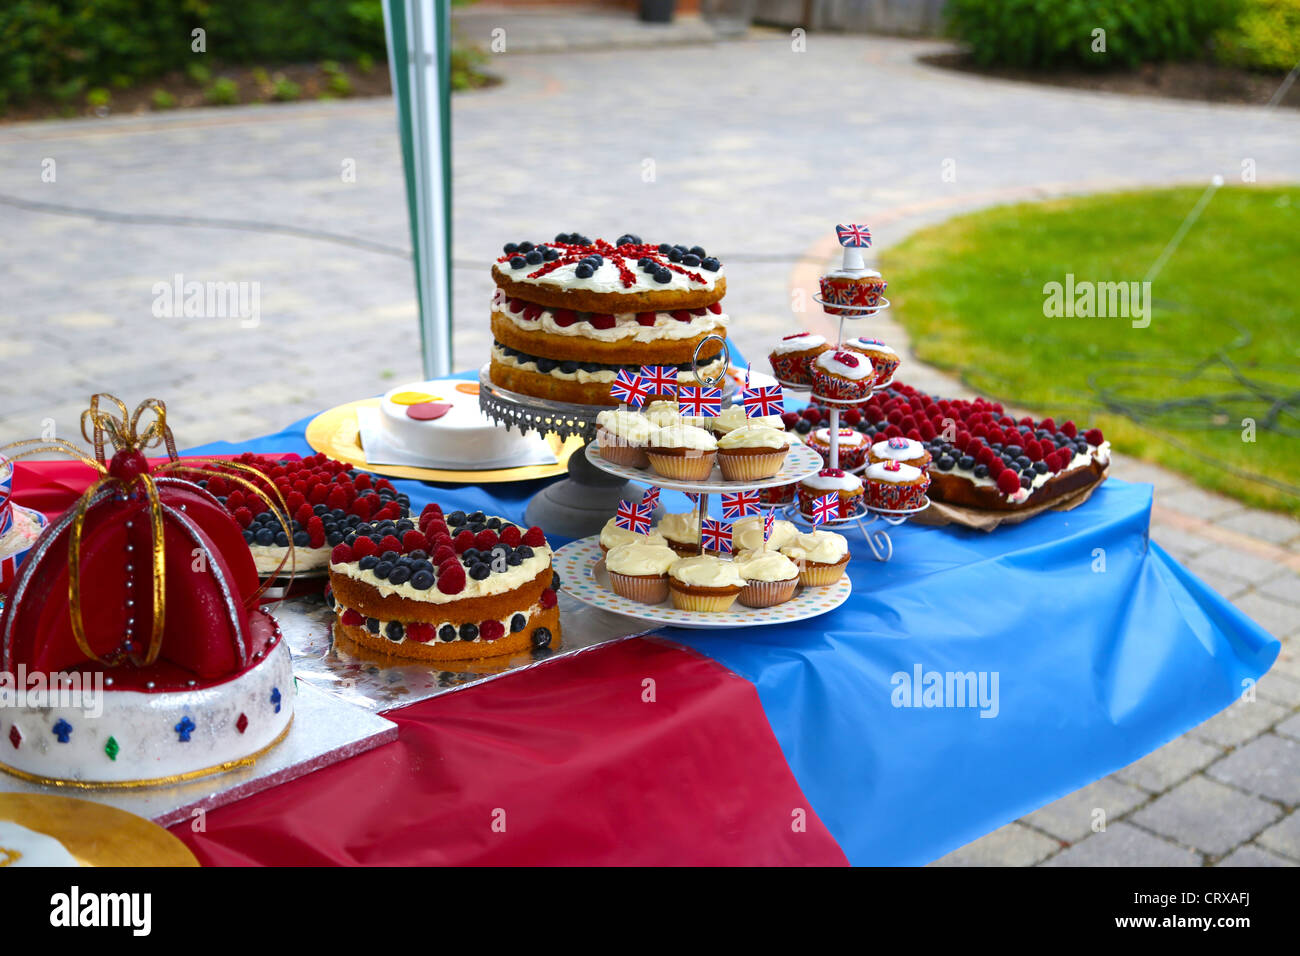 Cake Competition At A Street Party Cakes Decorated With Union Jacks - Stock Image